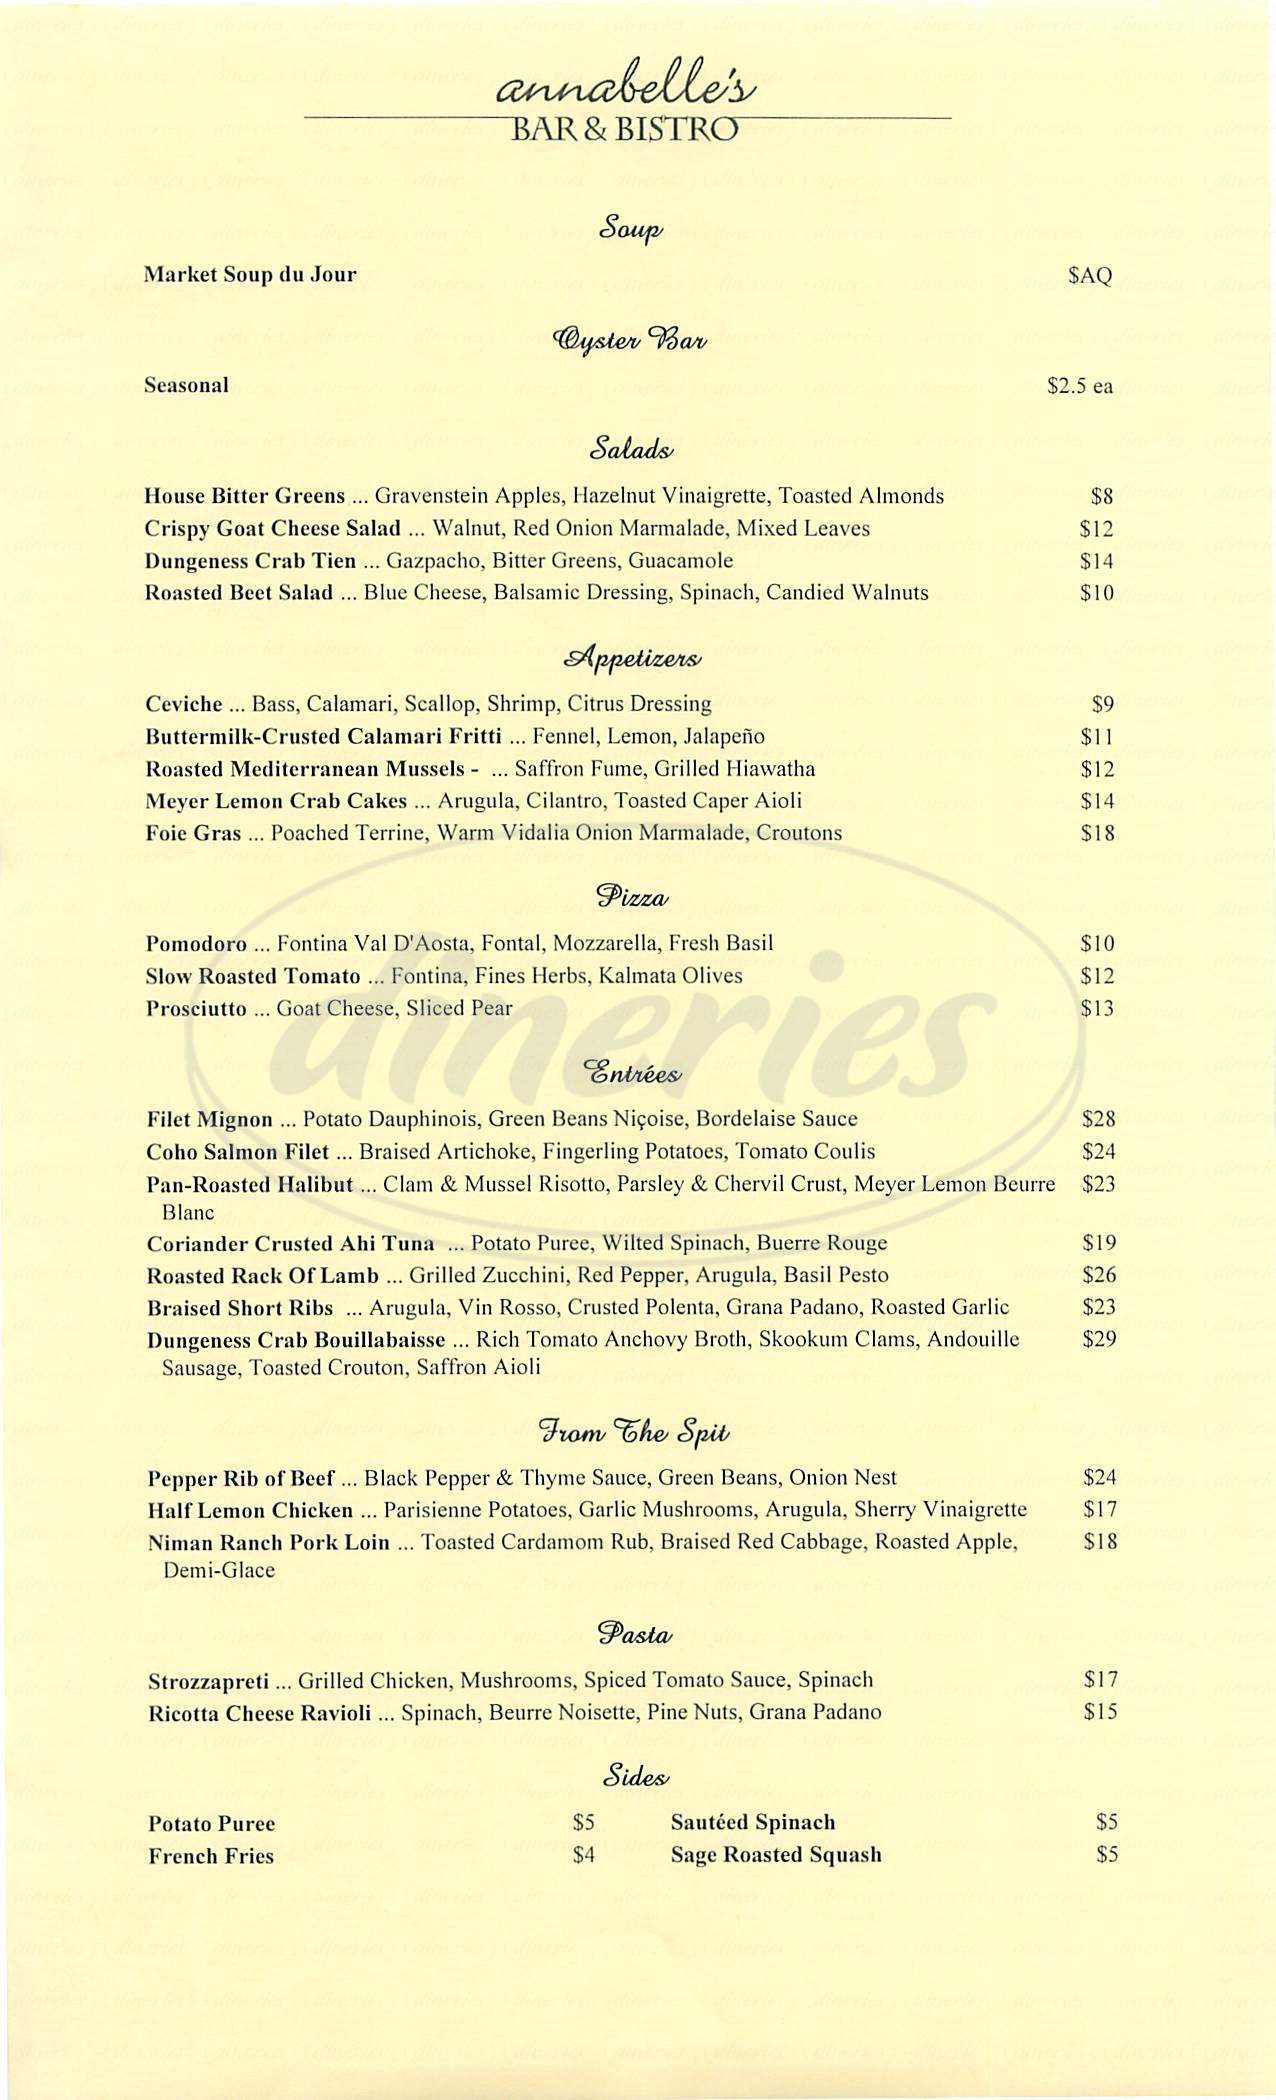 menu for Annabelles Bar & Bistro